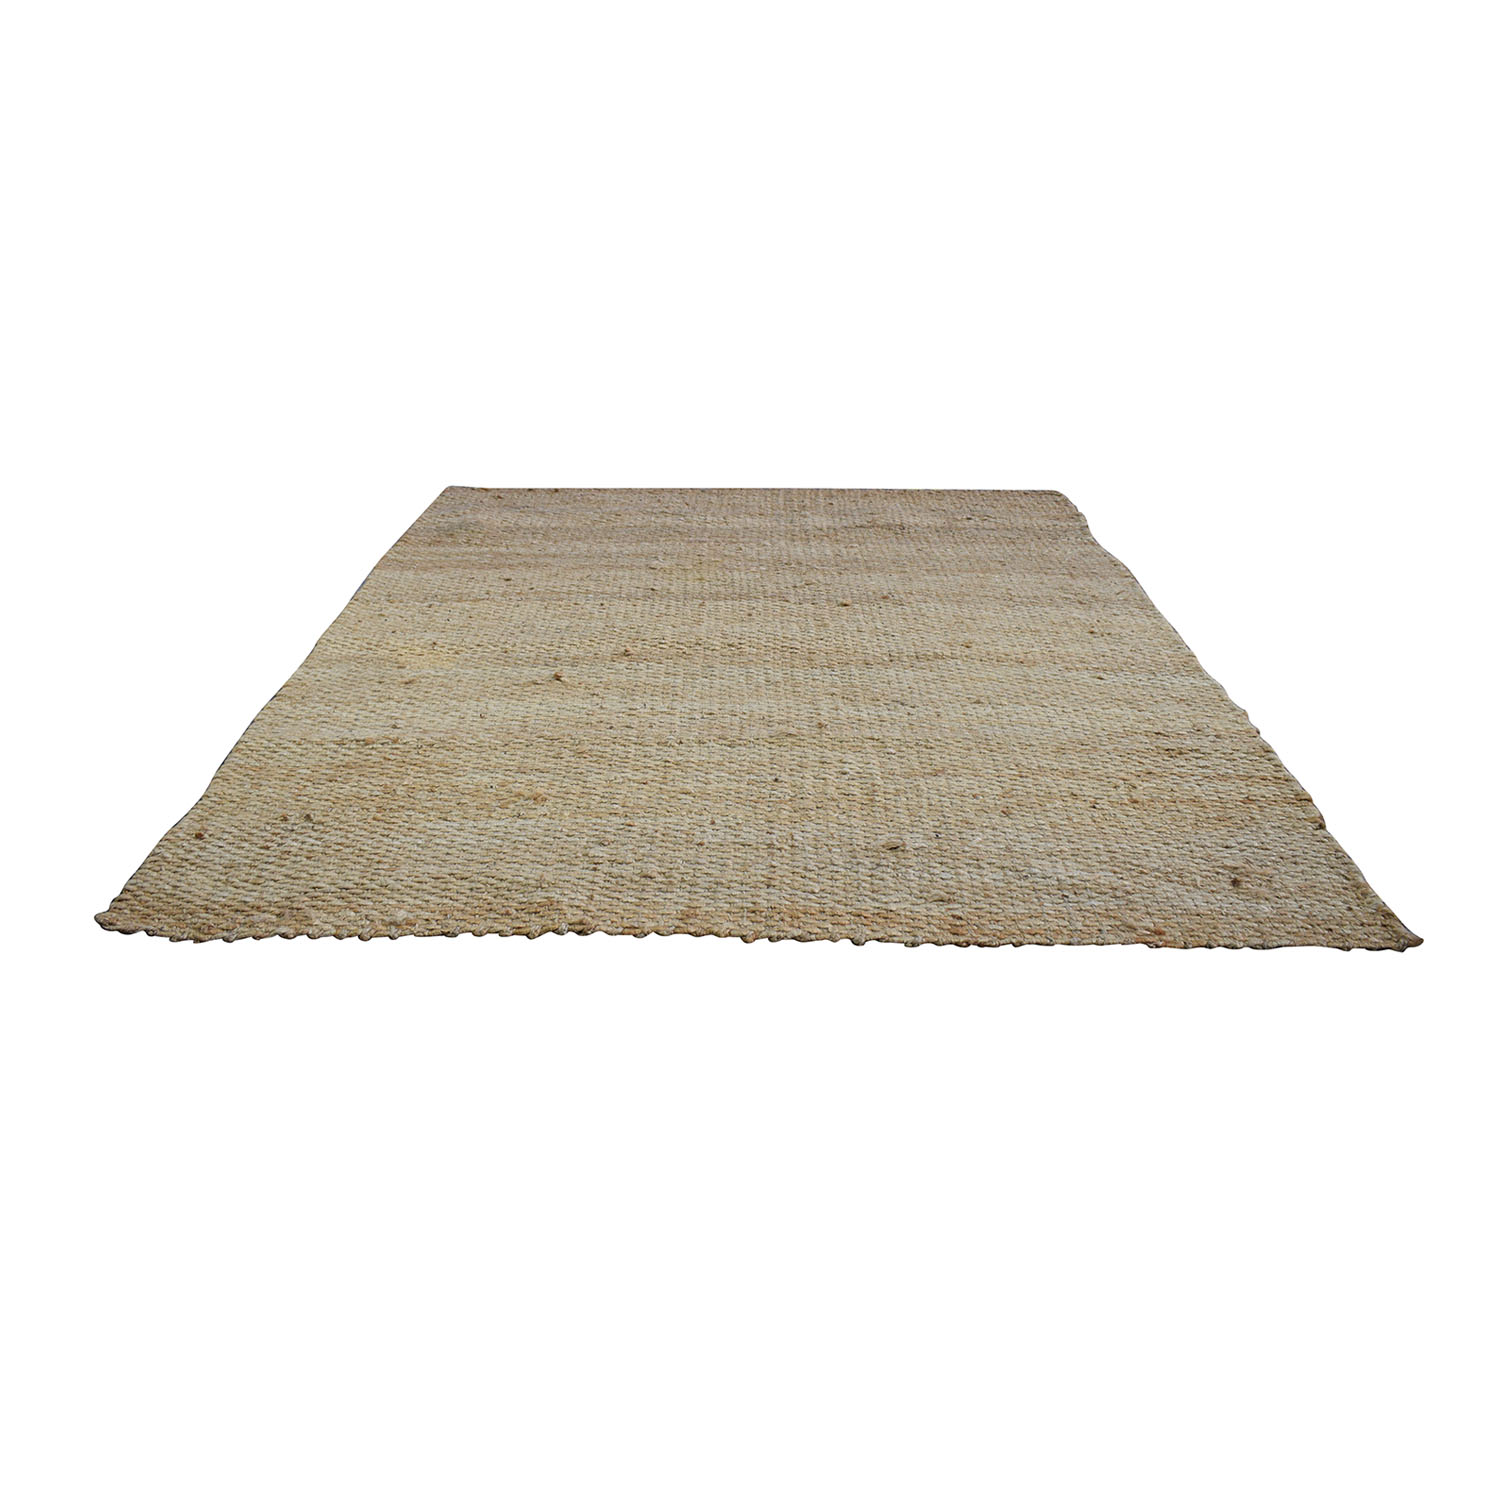 nuLOOM nuLoom Natural Jute Hand-Woven Chunky Rug price